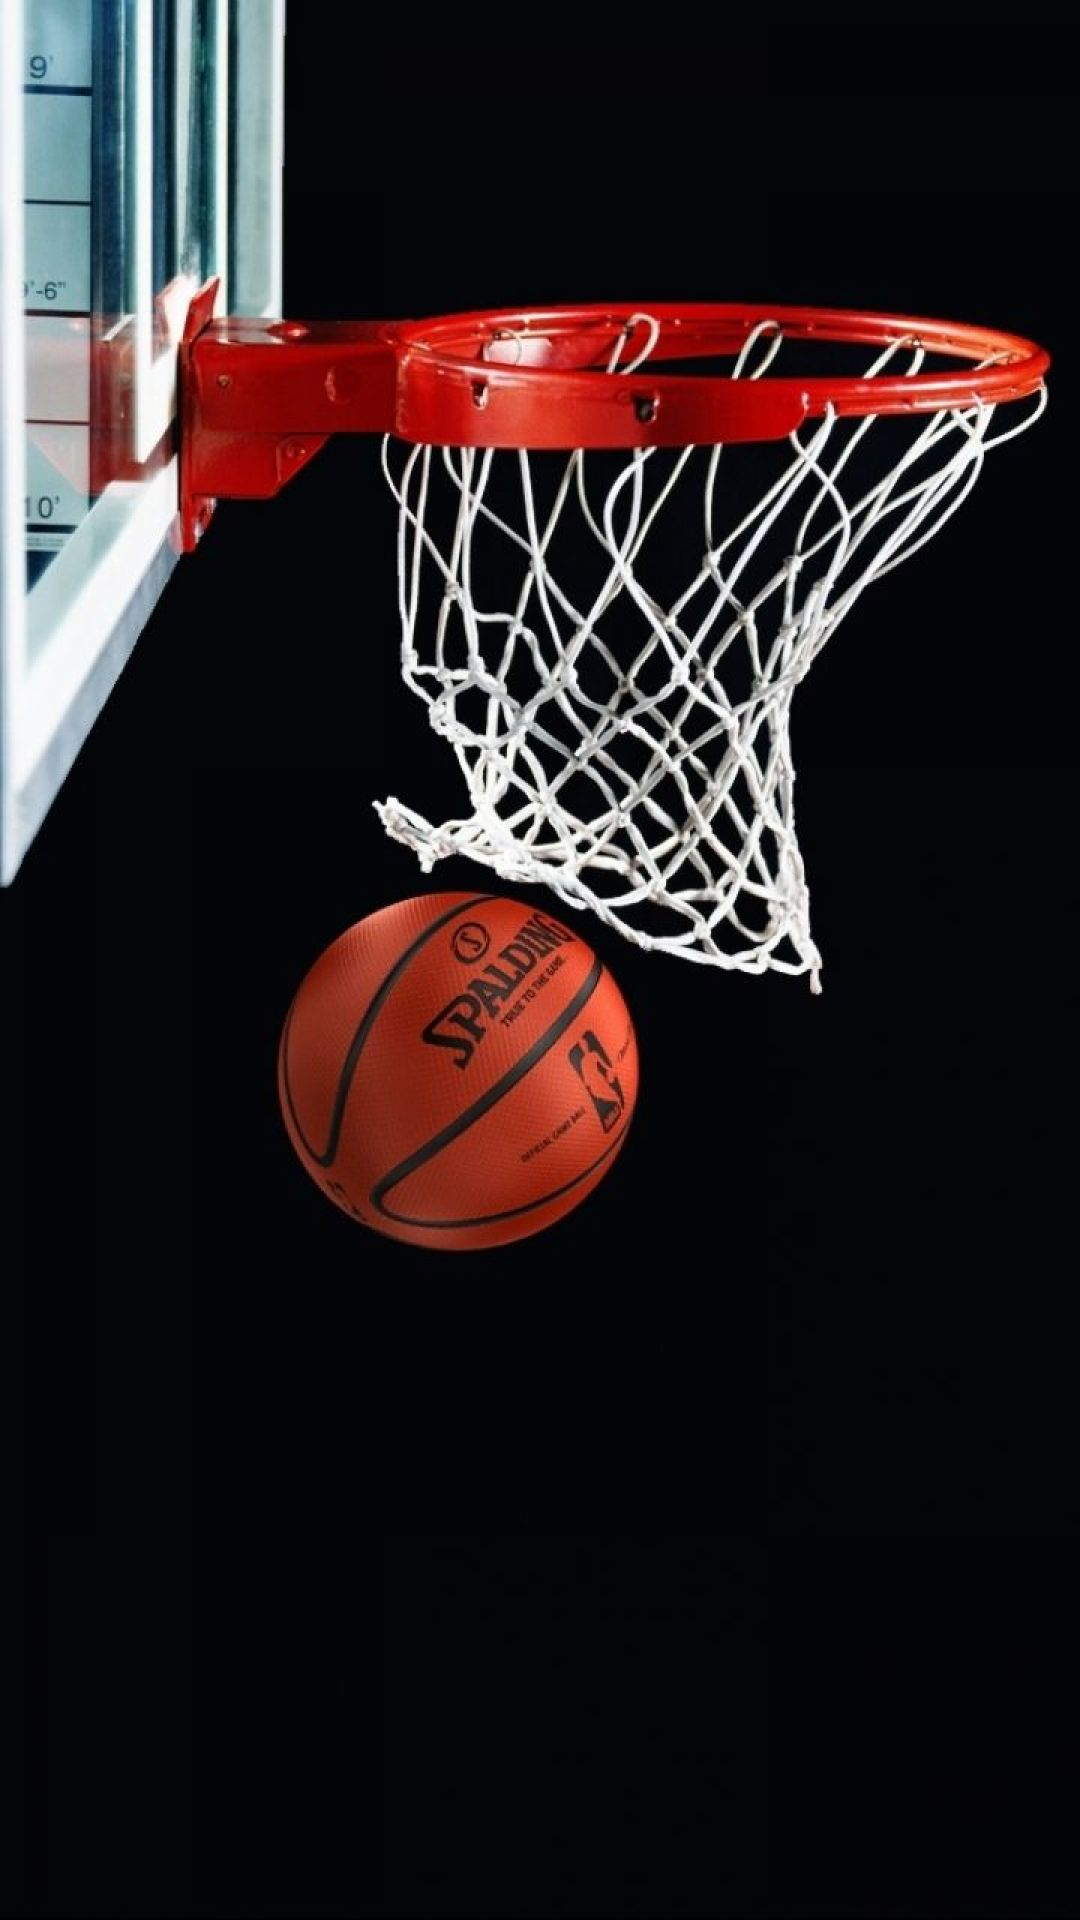 Hd Wallpapers-11 - Basketball Hd Wallpaper For Mobile , HD Wallpaper & Backgrounds